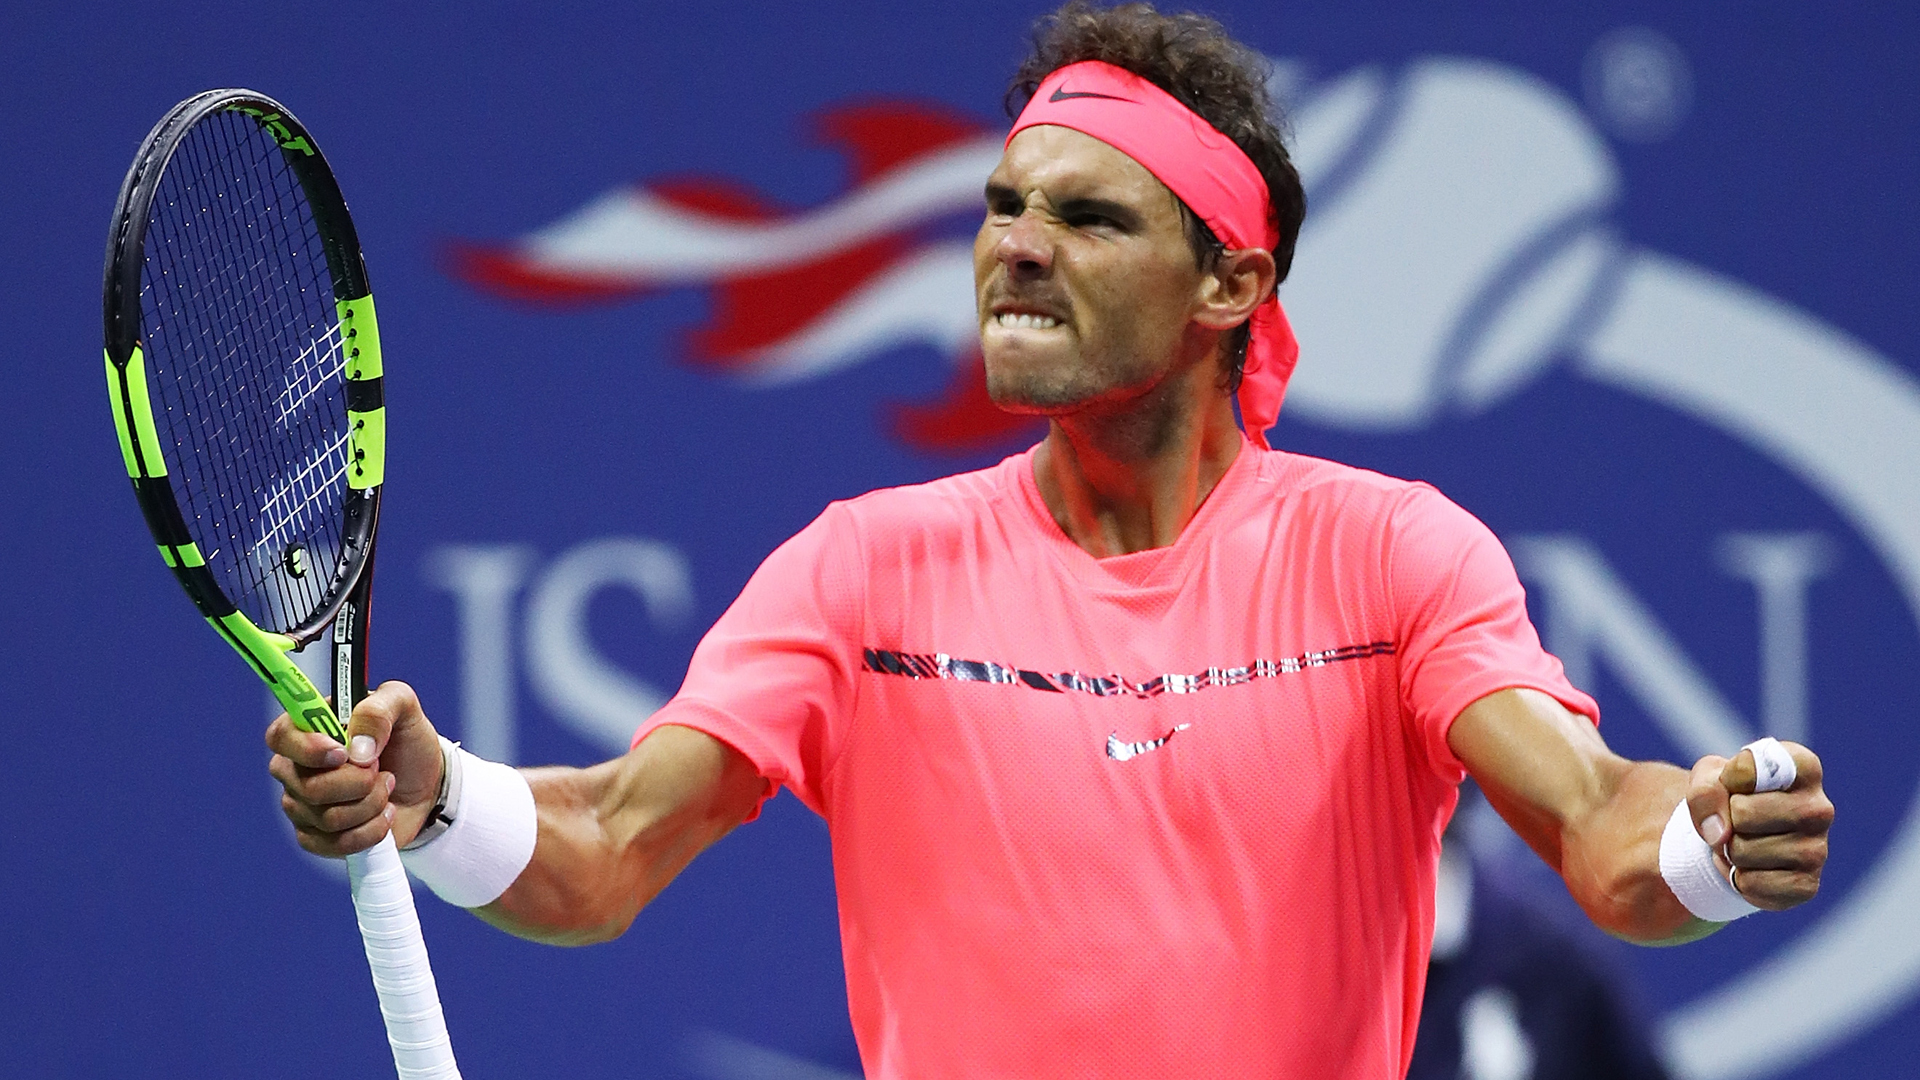 Rafael Nadal ousts Alexandr Dolgopolov to reach US Open quarter-finals